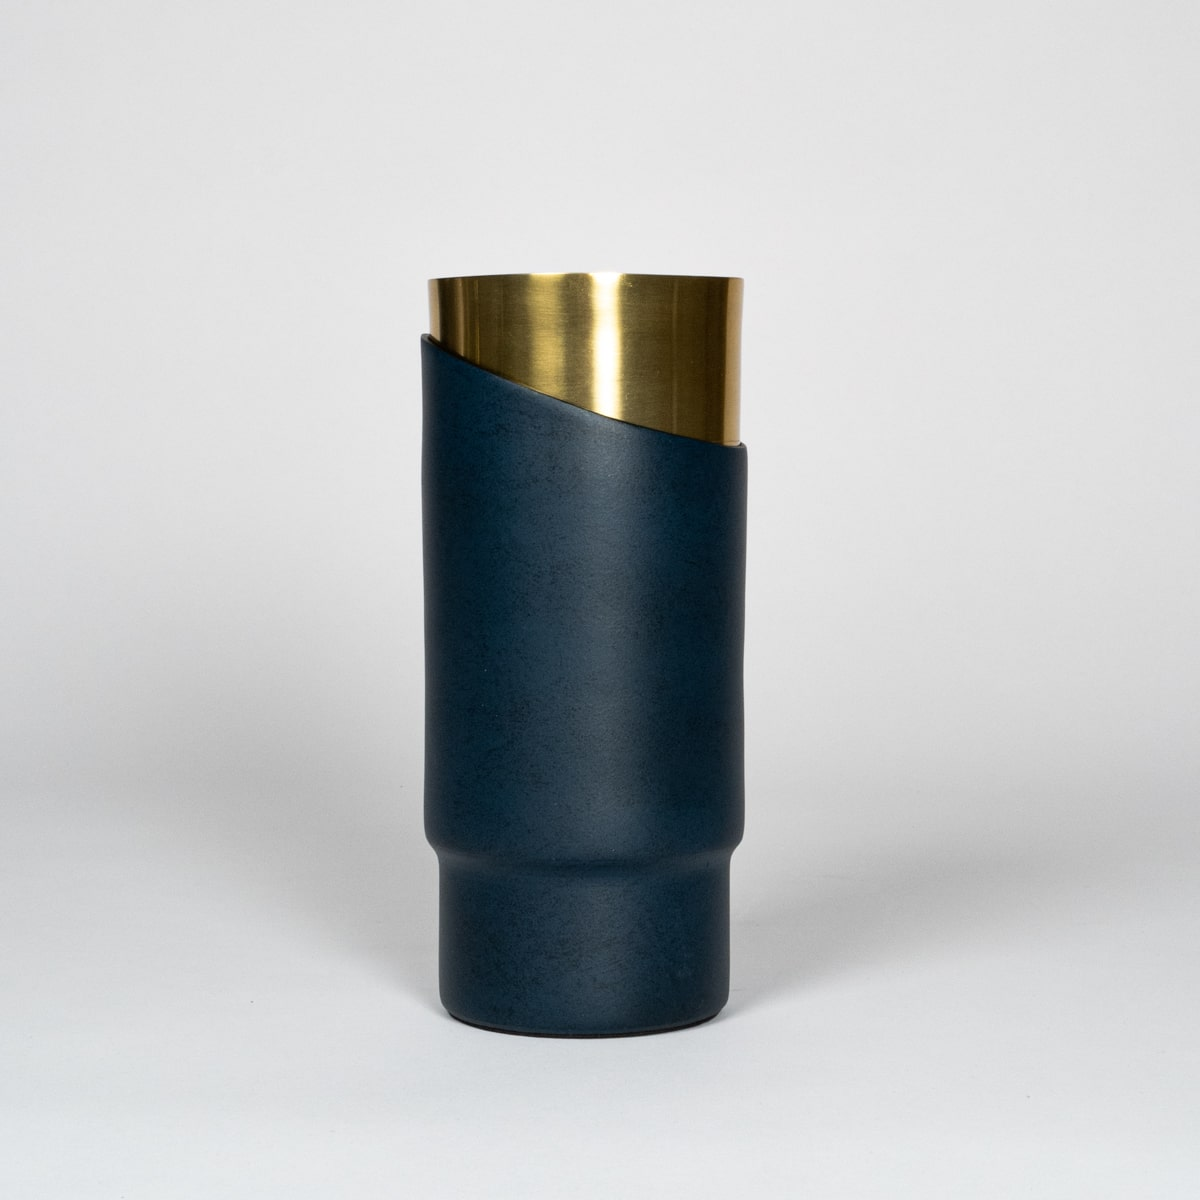 Bloom Flower Delivery | Deco Blue & Brass Vase